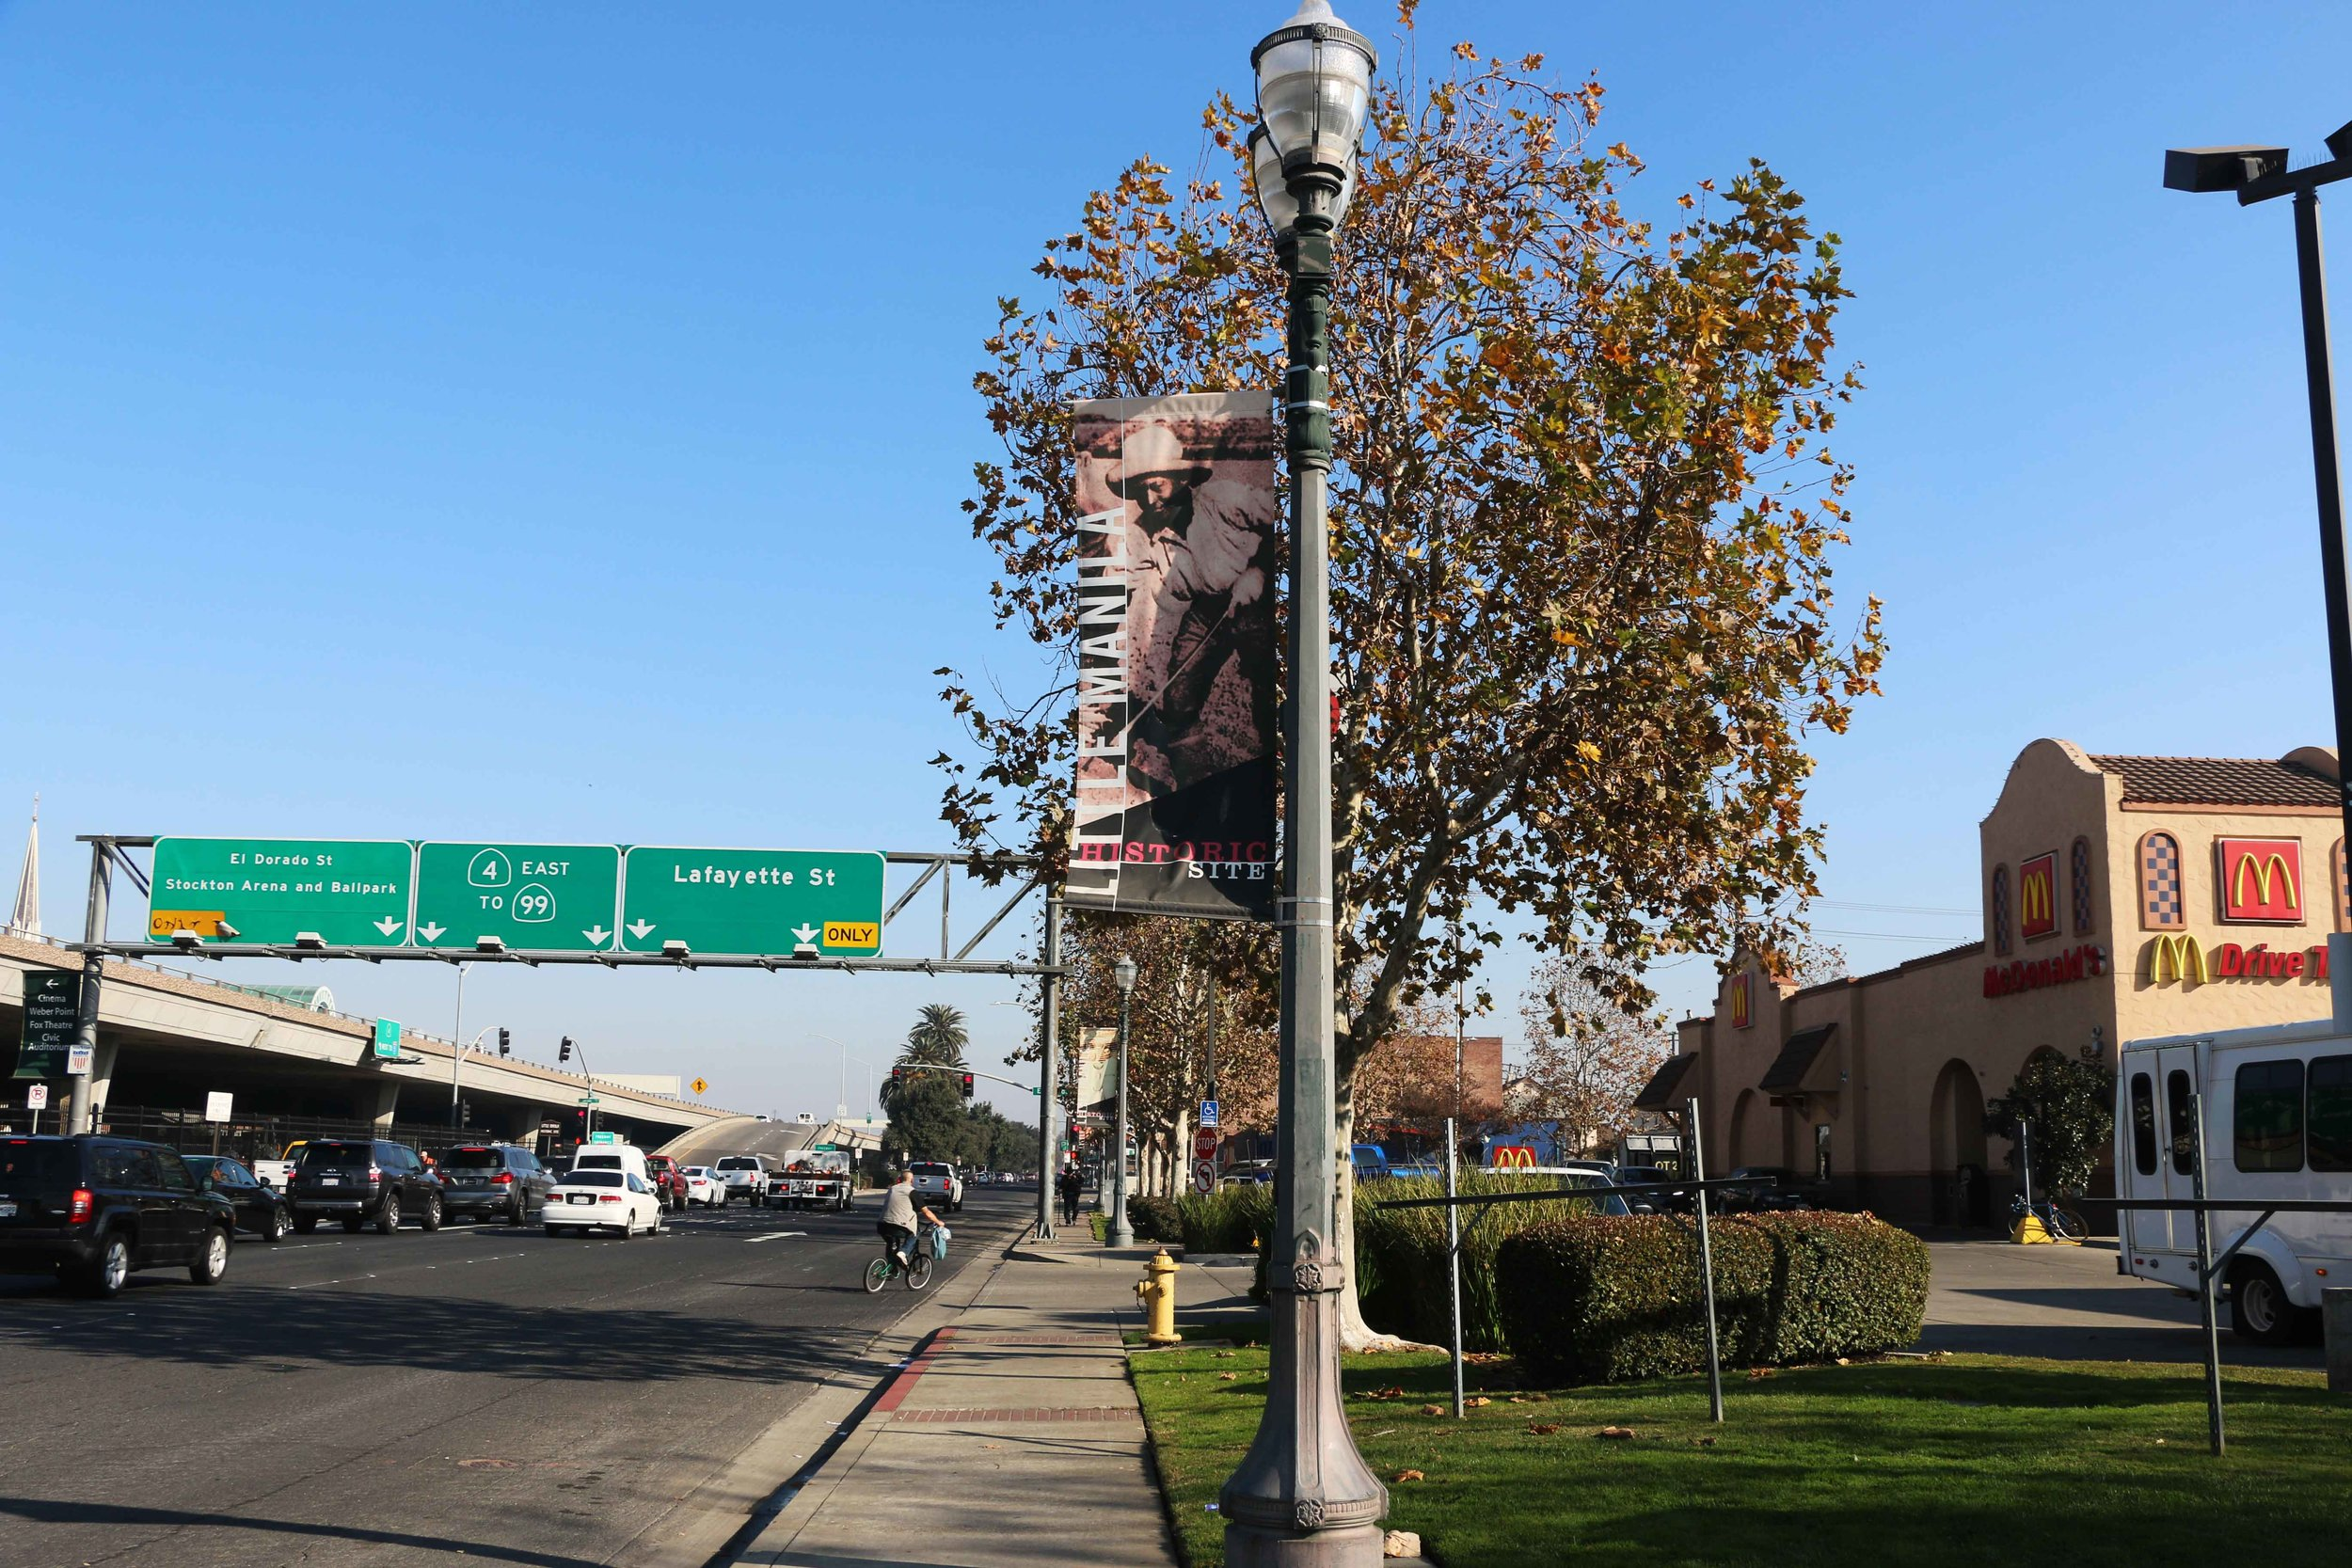 A banner marking the Little Manila Historic Site in Stockton, California is surrounded by a freeway, a gas station, and a McDonald's. Photo by Patrick Epino.